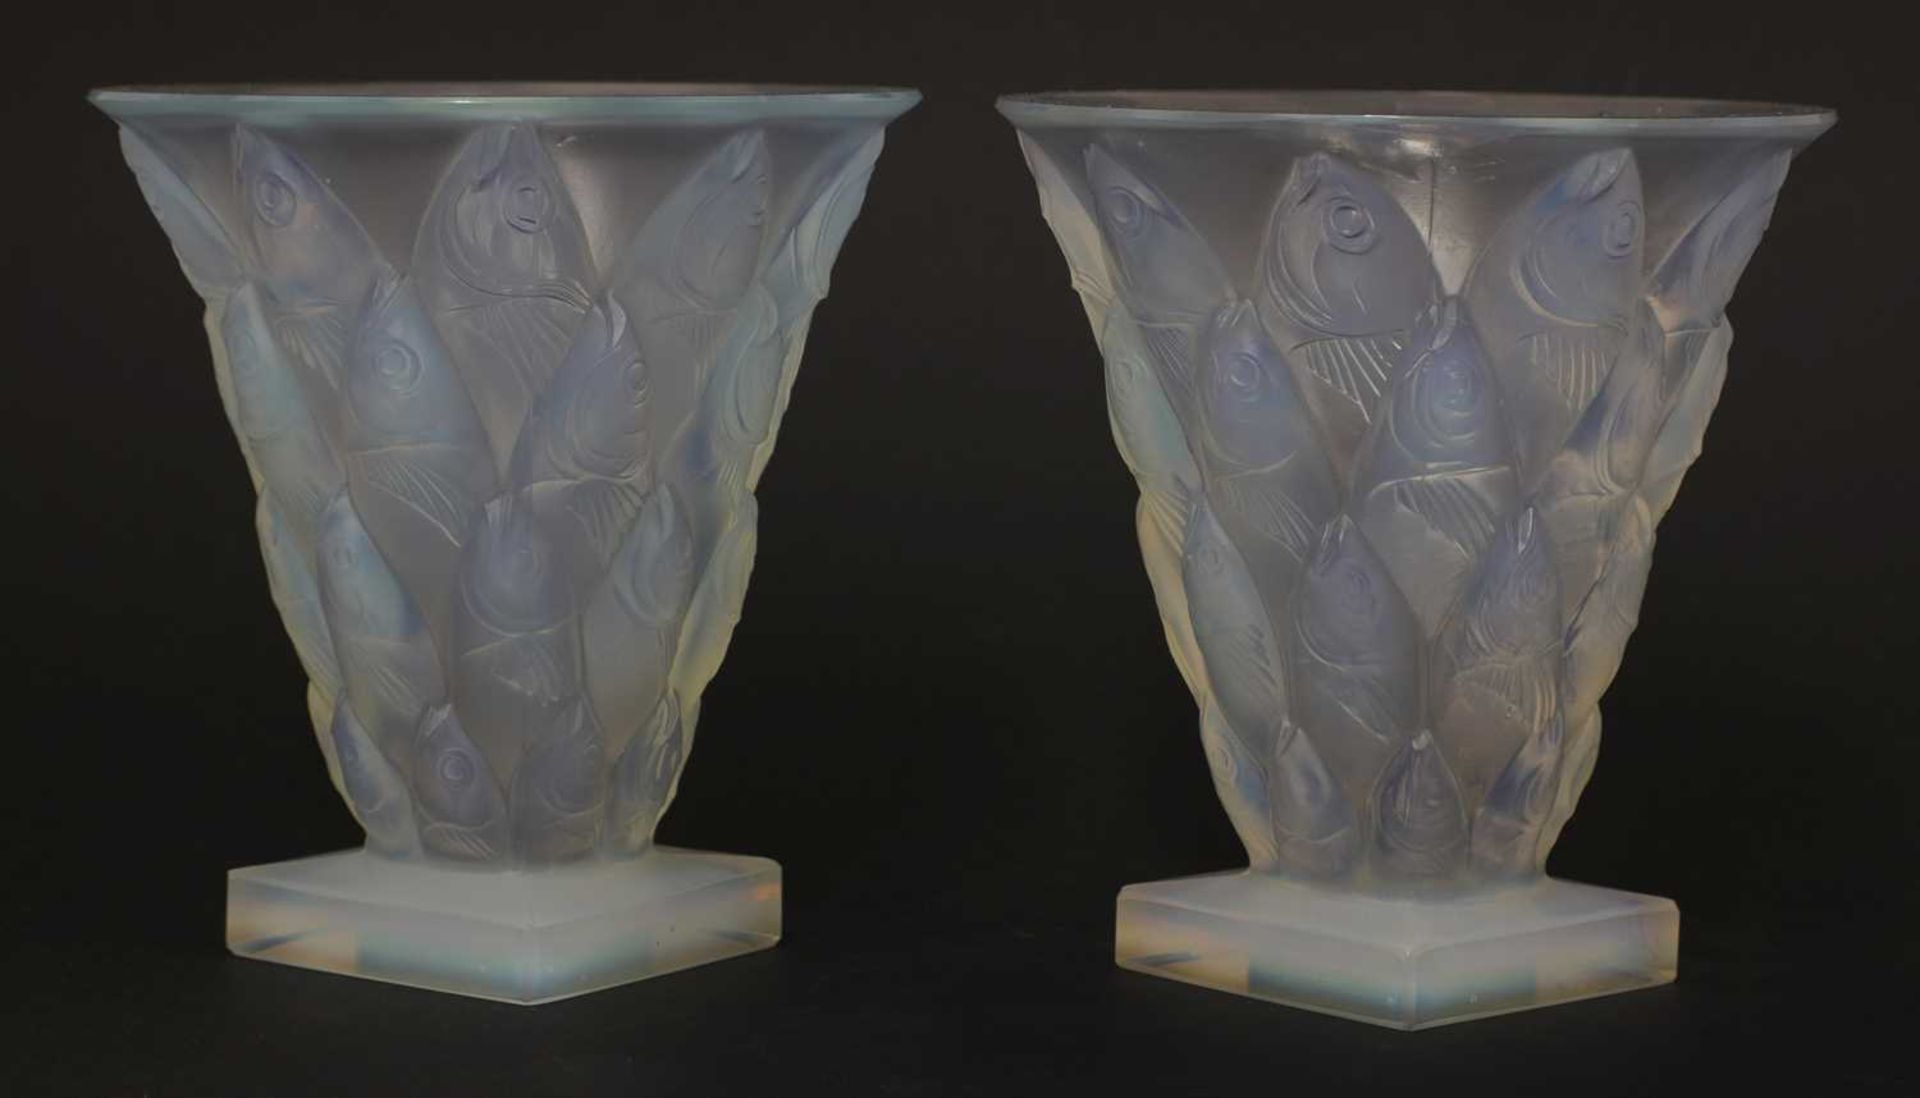 A pair of Sabino opalescent glass vases, - Image 3 of 4